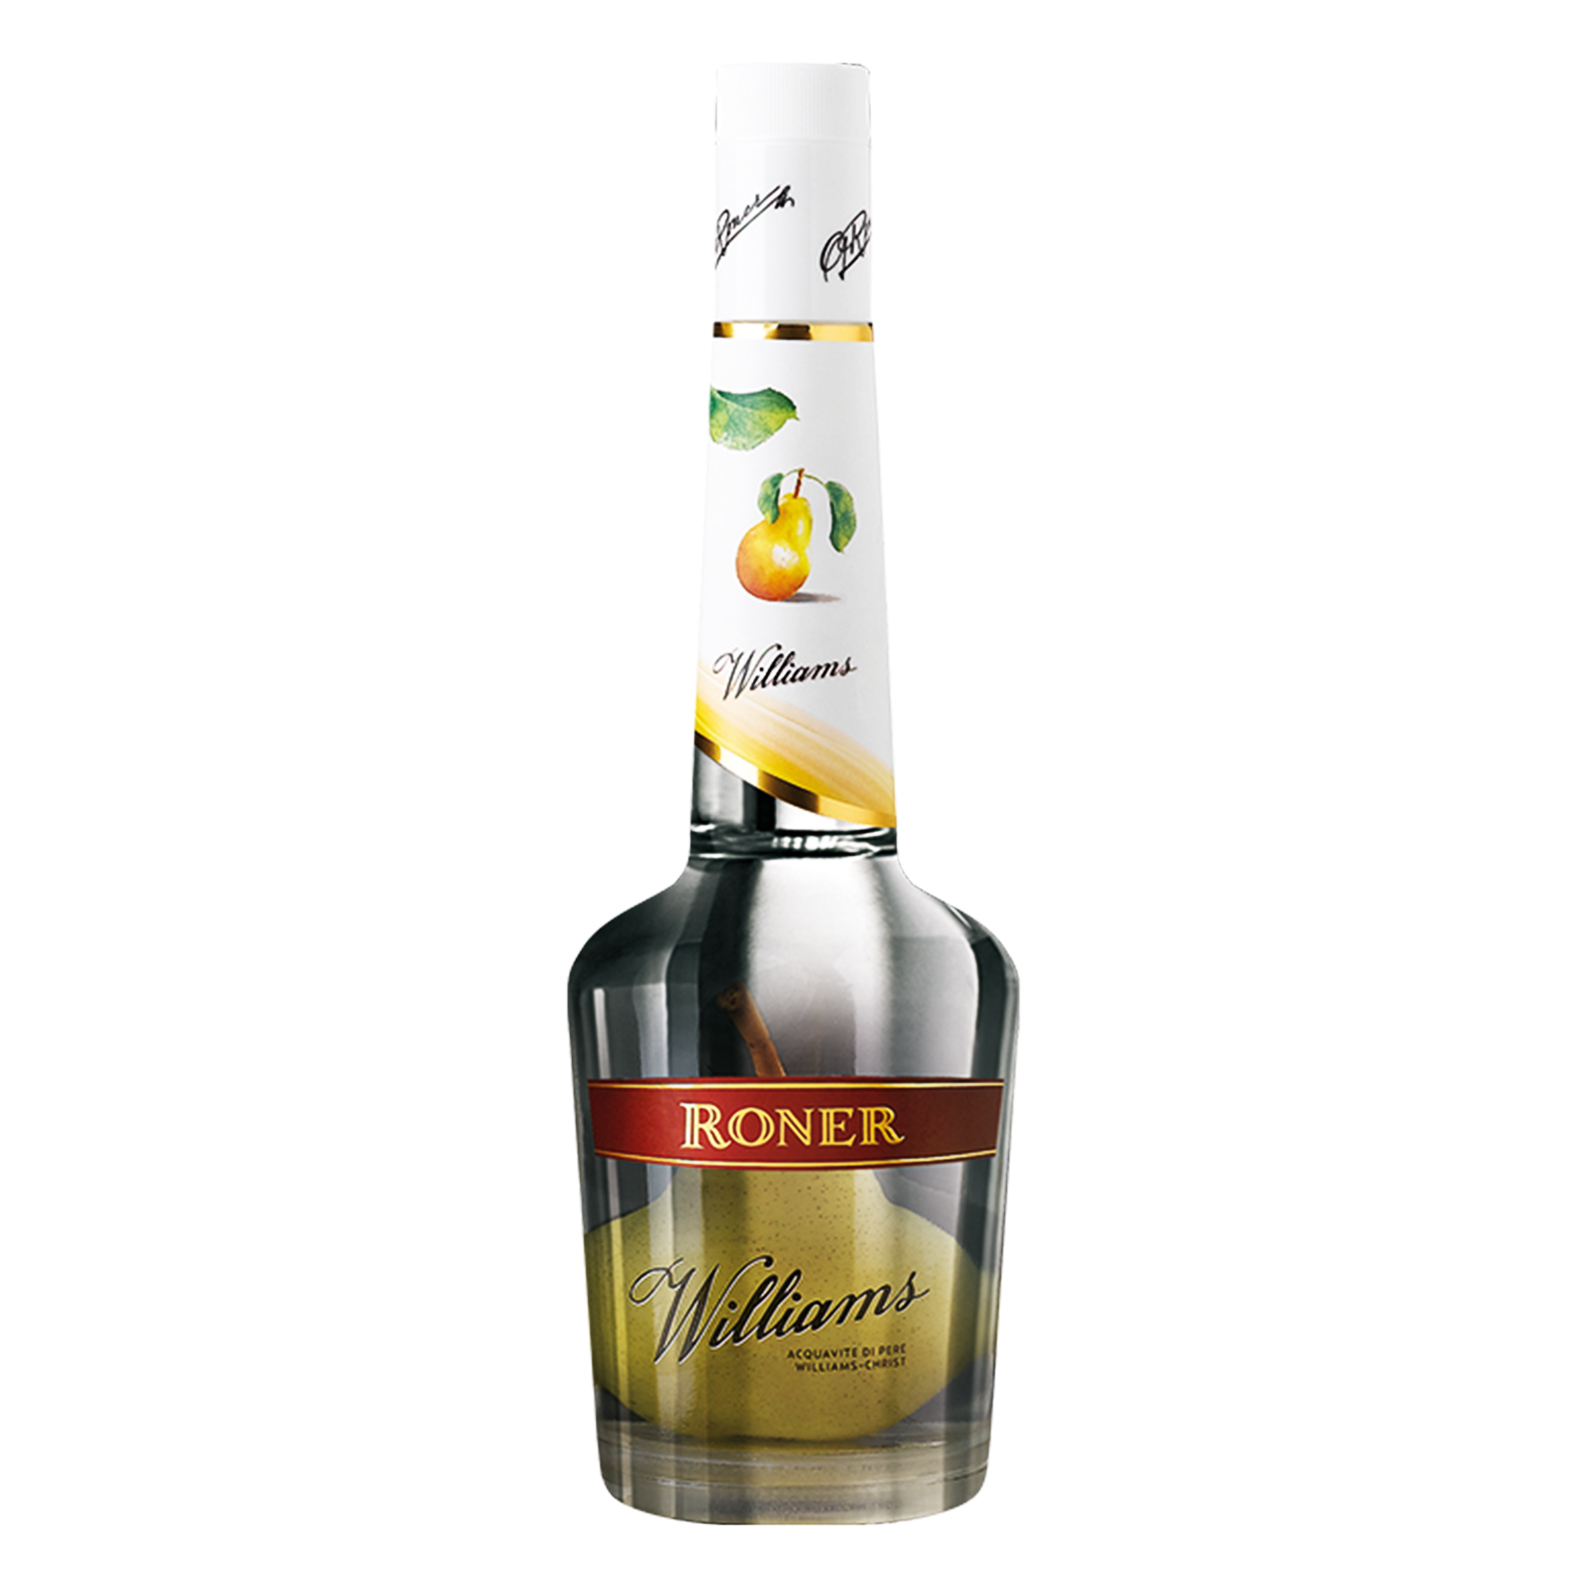 William Roner Acquavite con Pera - 0.70 - Grappa - Roner